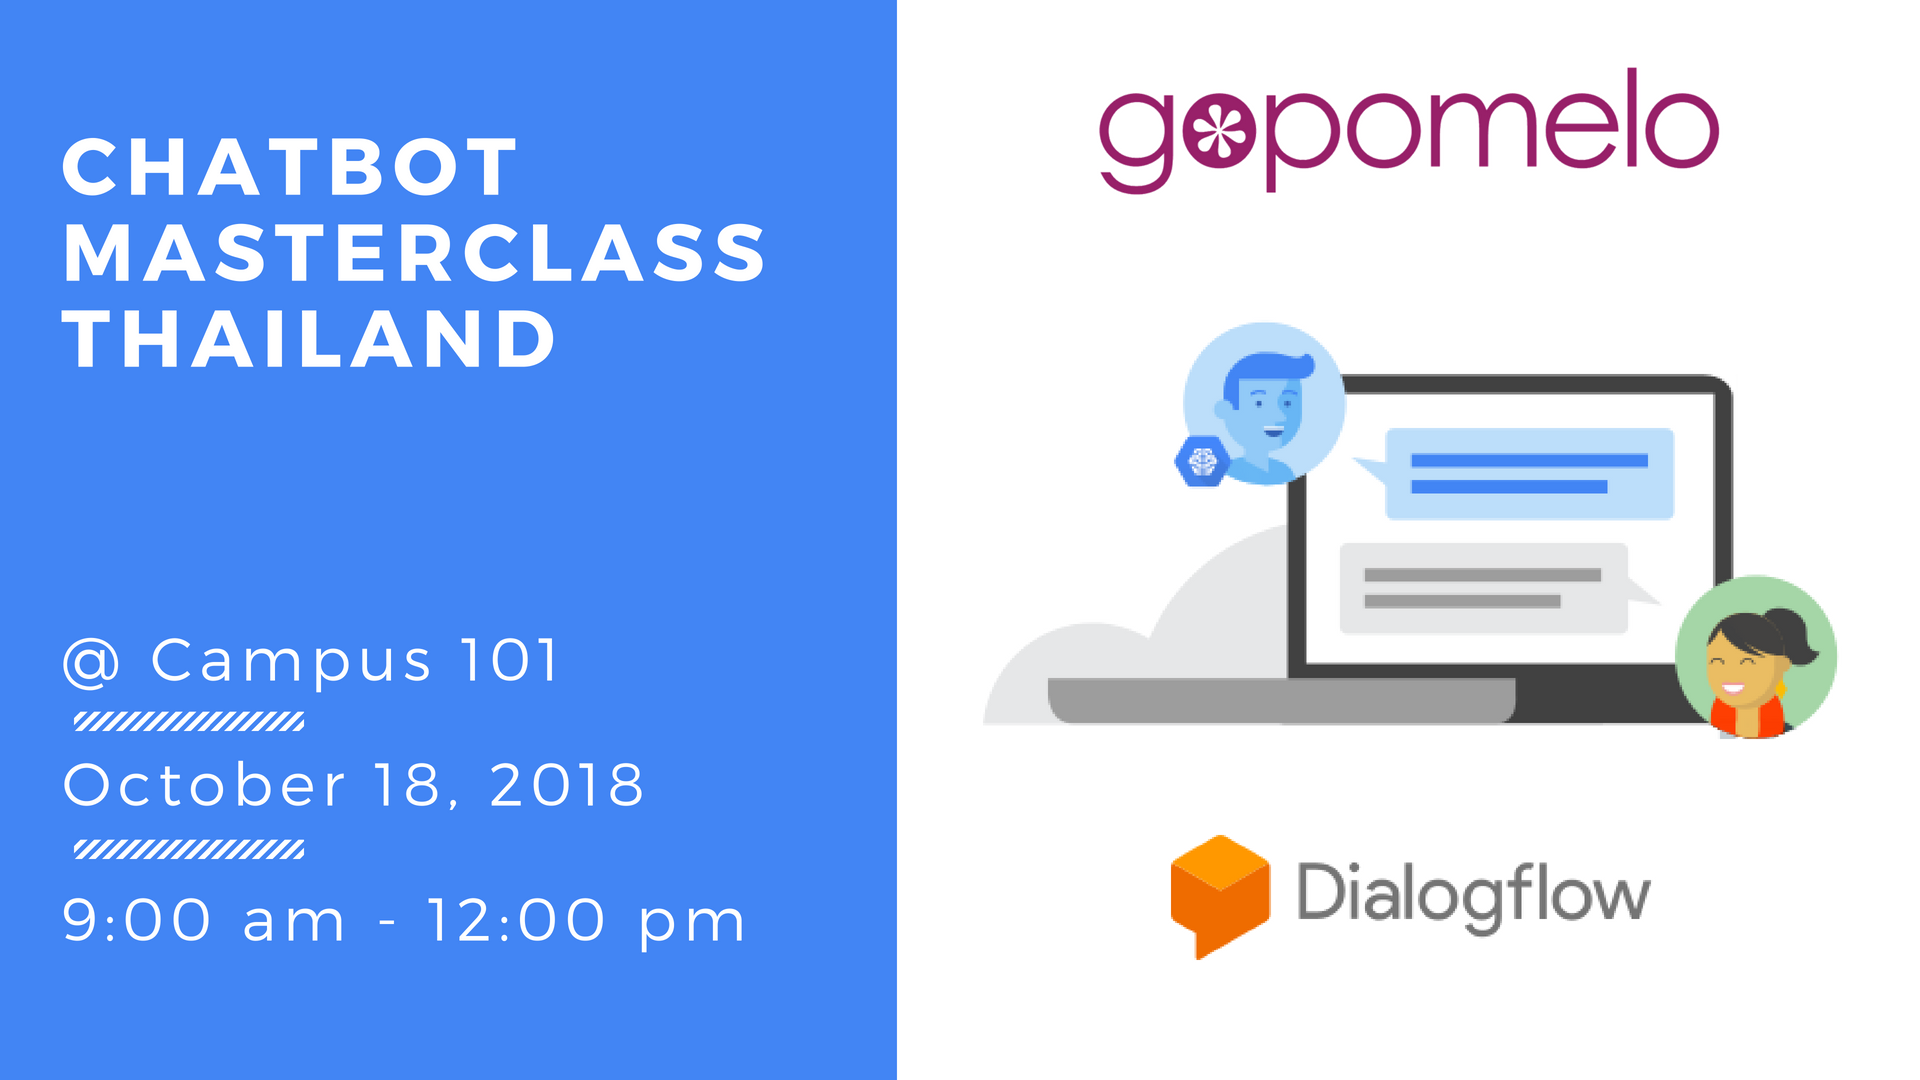 Chatbot Masterclass Thailand - Webpage.png